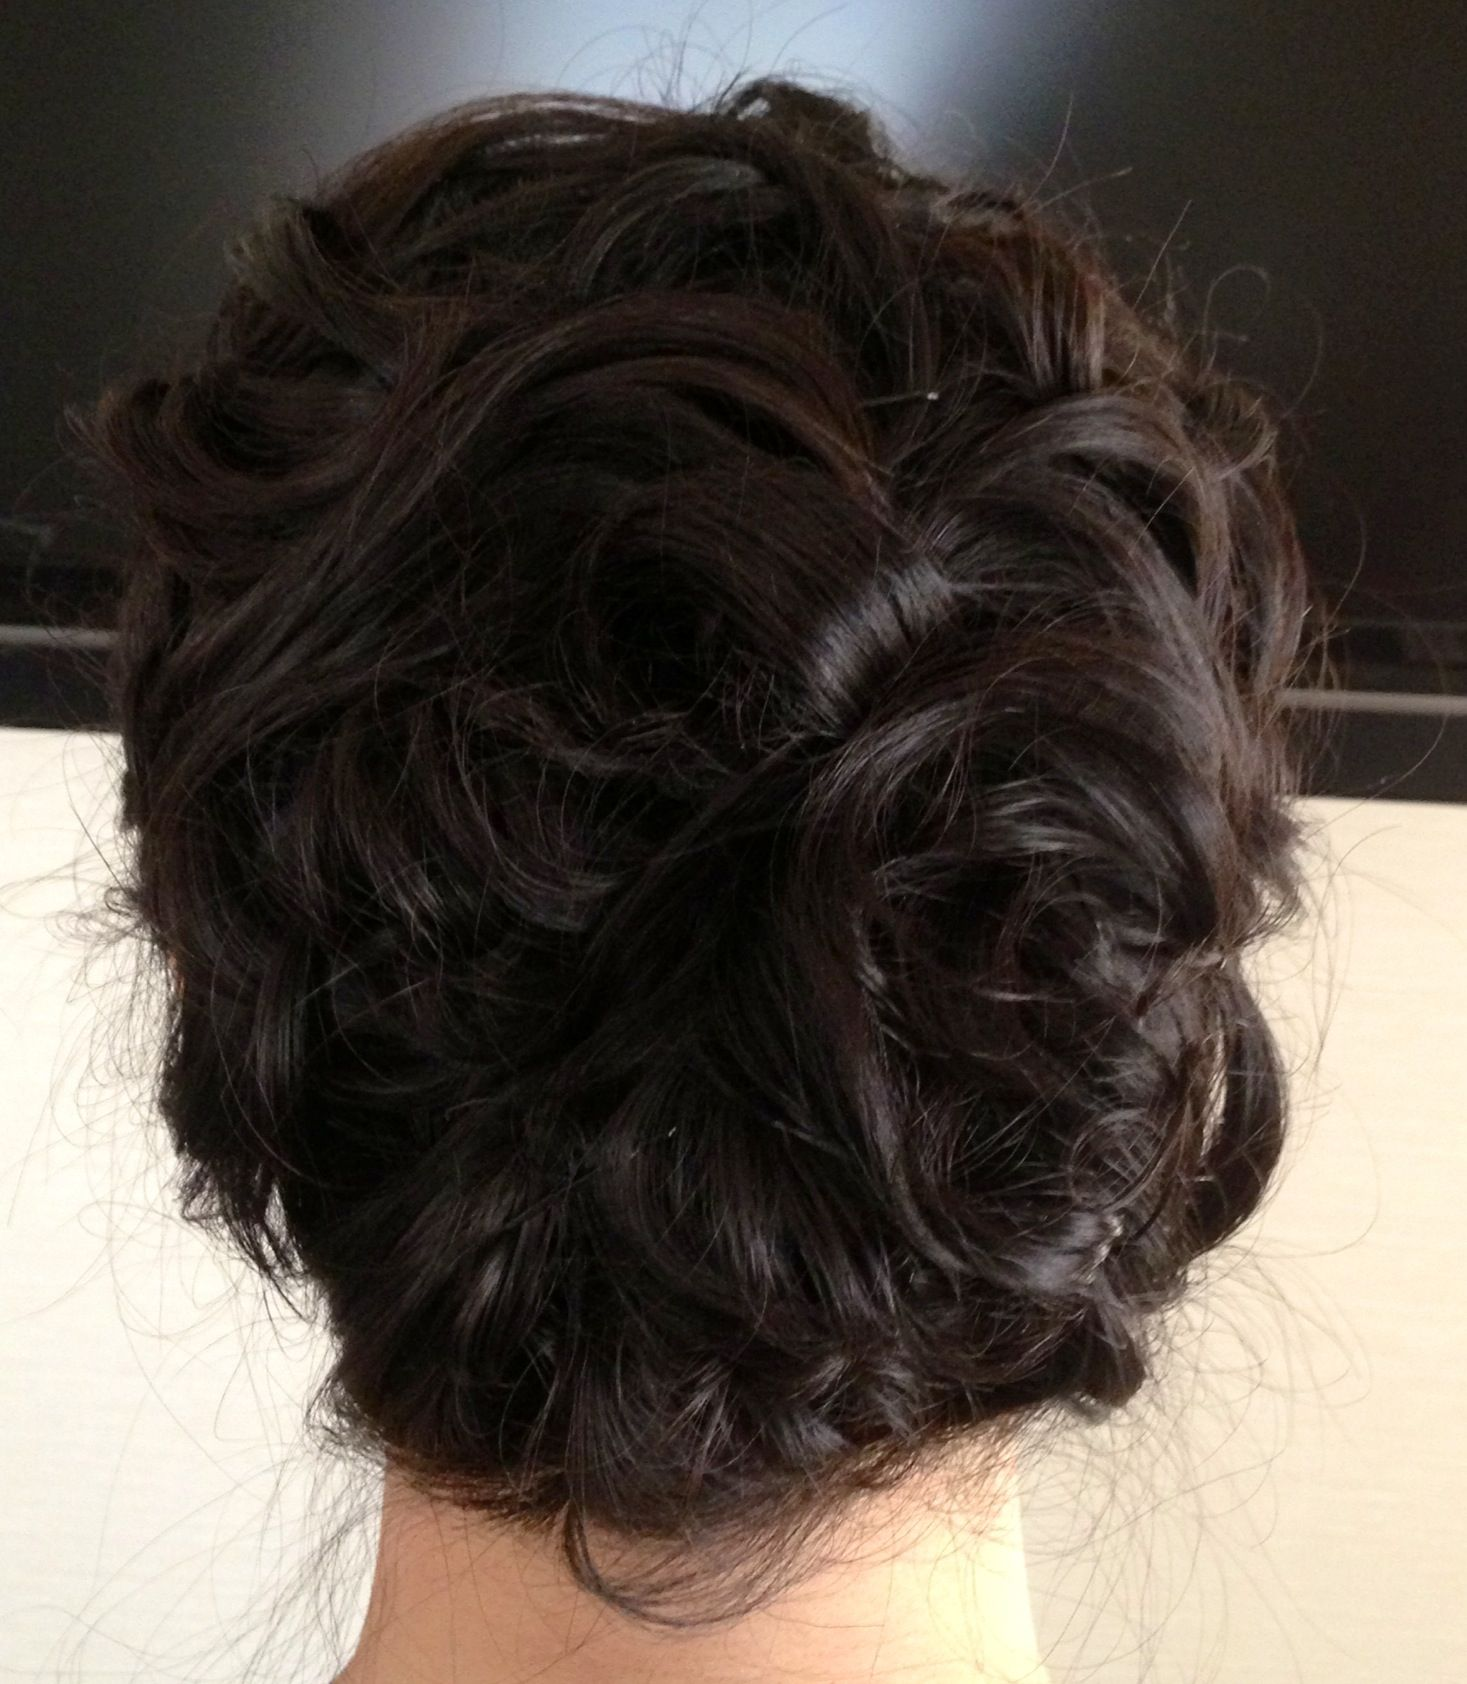 fancy hair styles for hair wedding updo wedding hair updo textured updo hair 2875